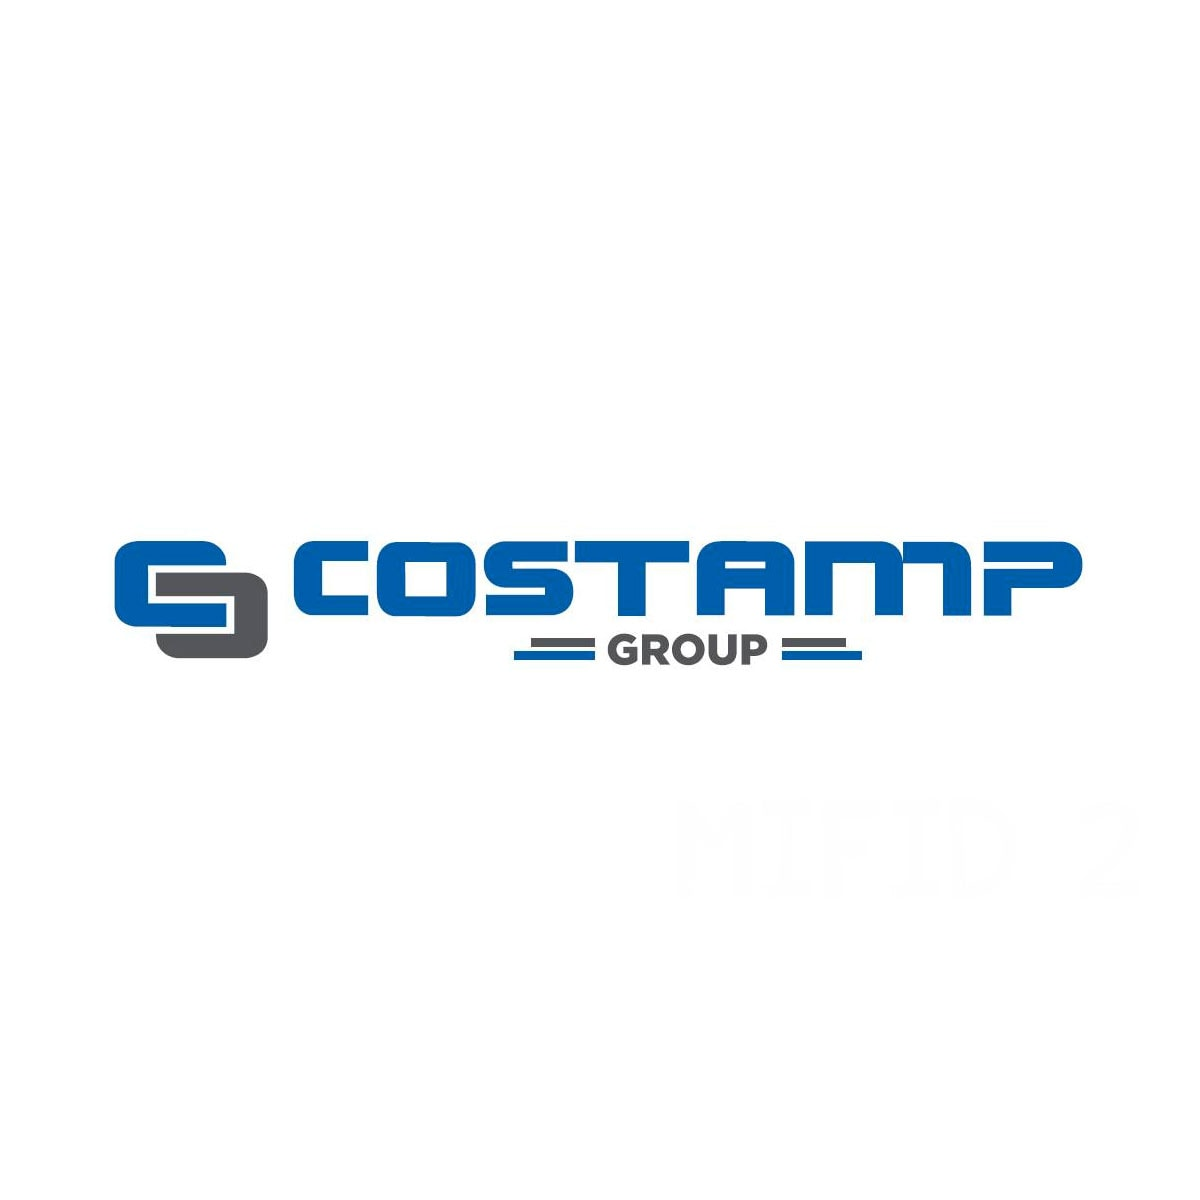 costamp-group